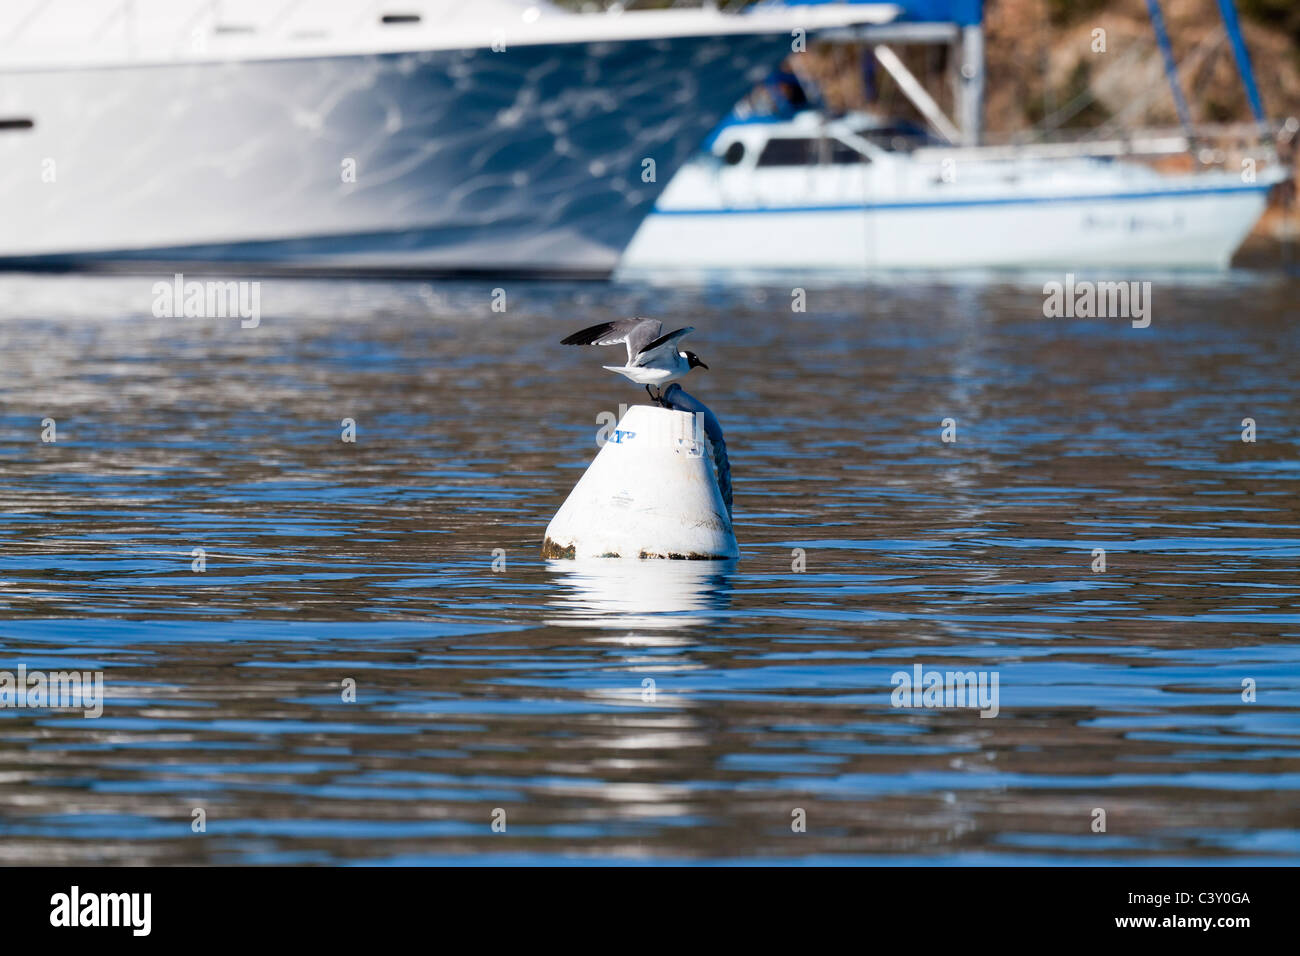 Seagull with spread wings landing on a buoy floating on water near sailboats - Stock Image